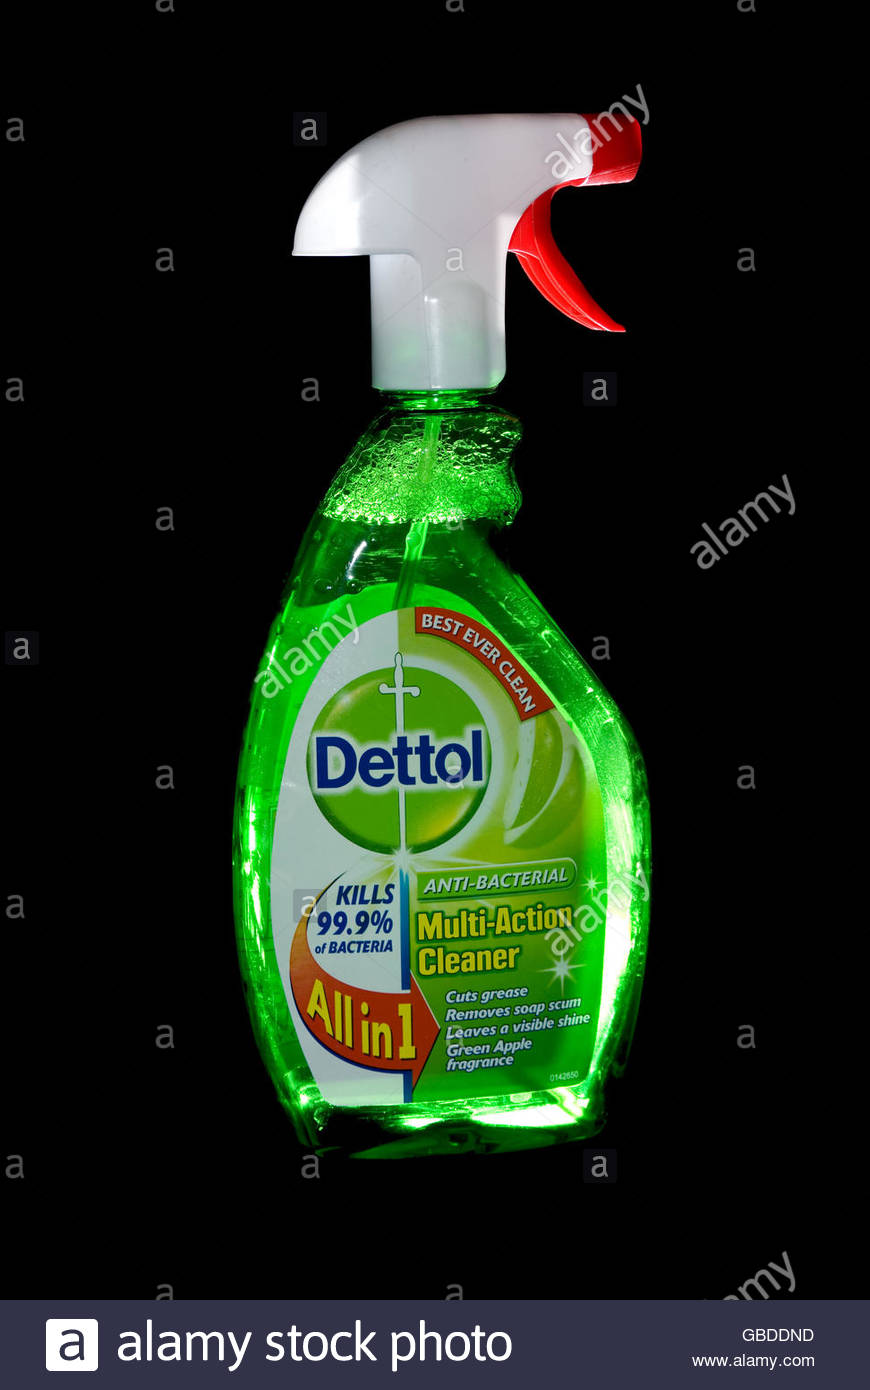 Anti Bacterial Cleaner Stock Photos Cussons Baby Liquid Detergent 750ml Household Cleaning Products Image